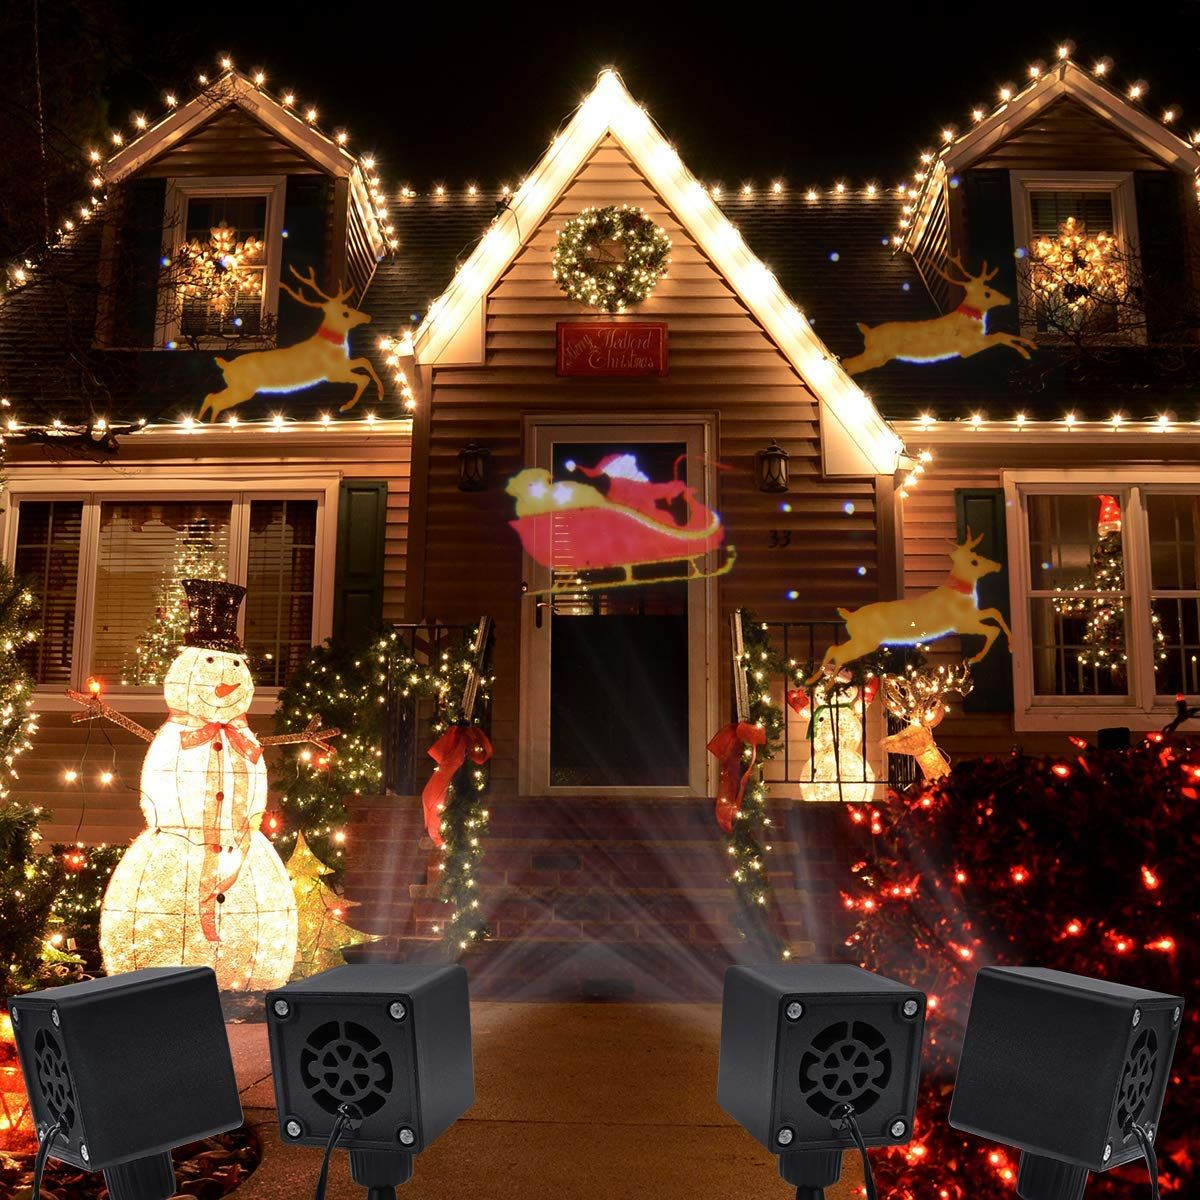 Amazon Com Yunlights Christmas Lights Projector Santa Reindeer Led Projector Lig Outdoor Christmas Decorations Christmas Decorations Christmas Light Projector